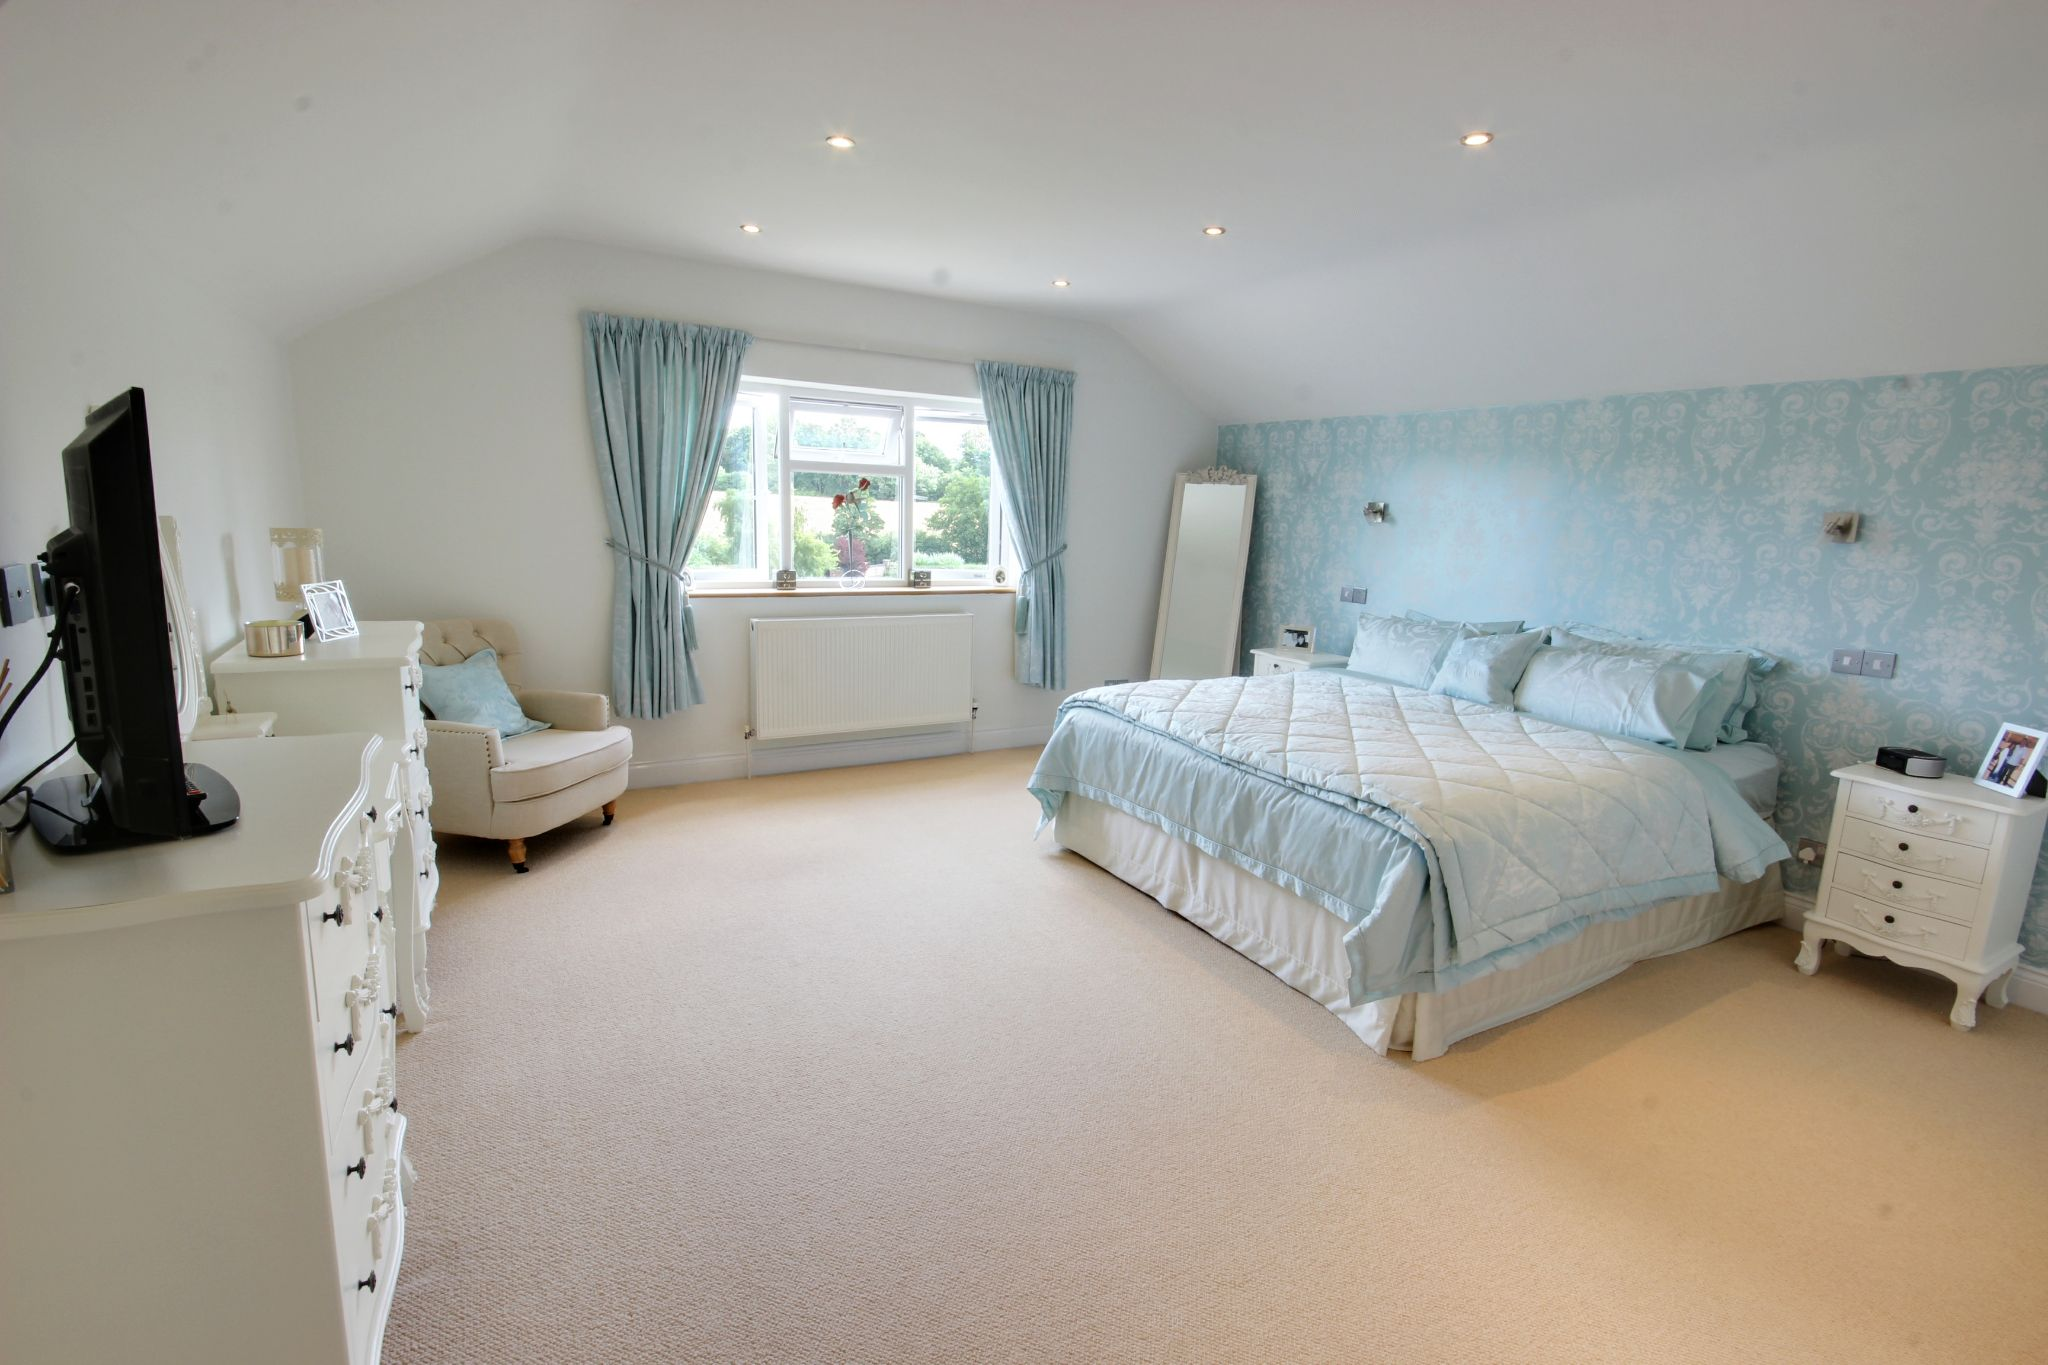 5 bedroom detached house SSTC in North Mymms - Photograph 8